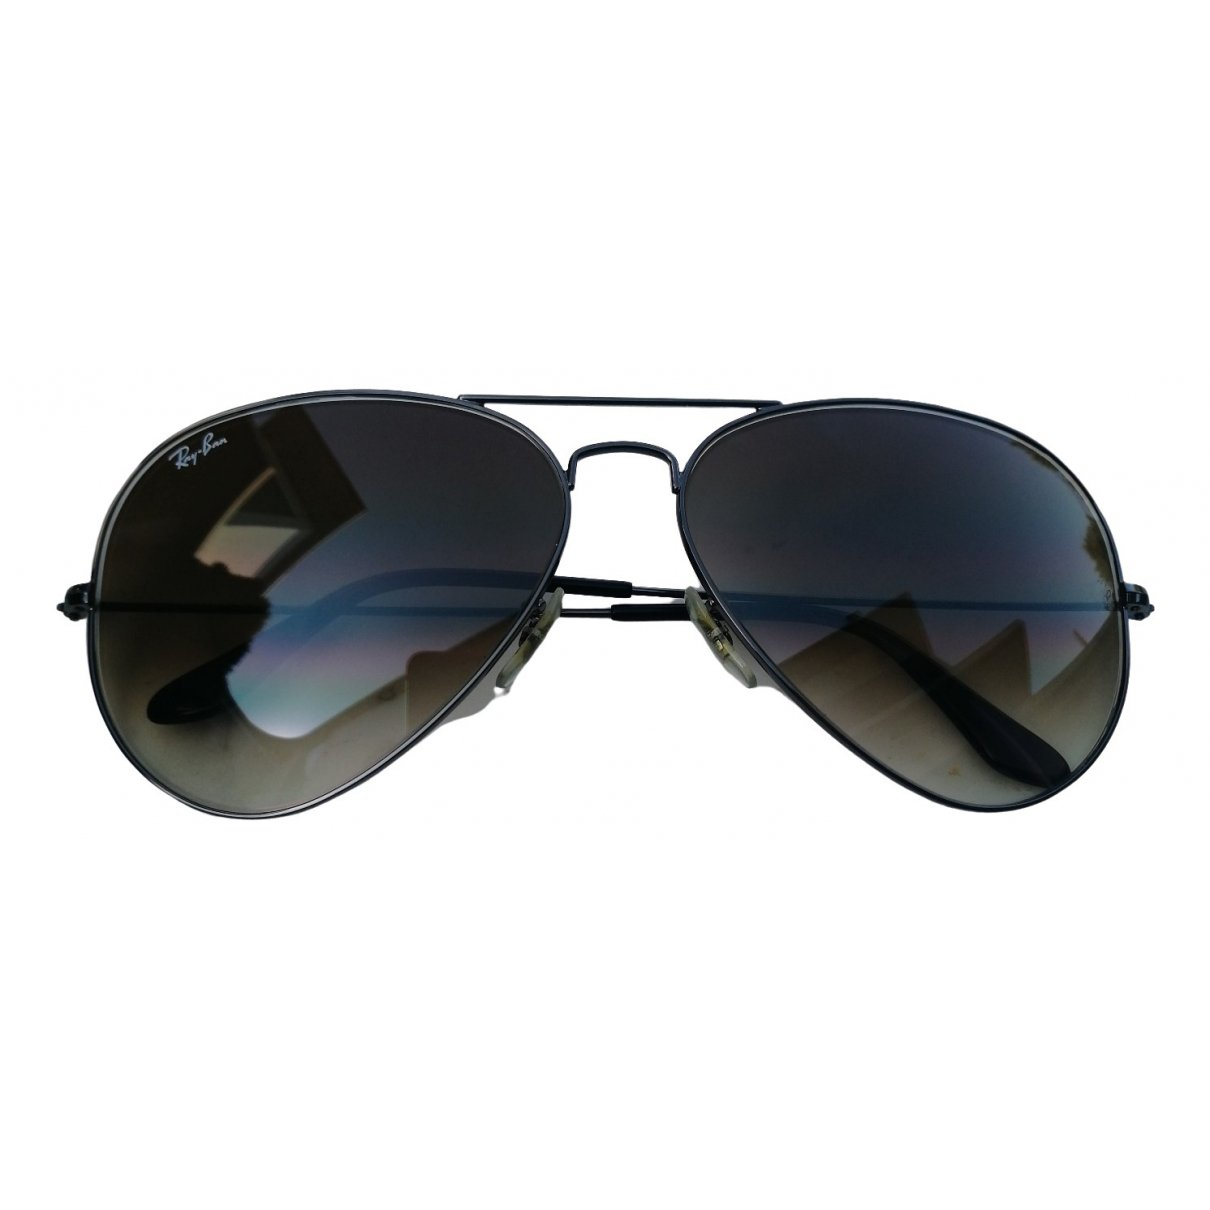 Ray-ban Aviator Brown Metal Sunglasses for Men